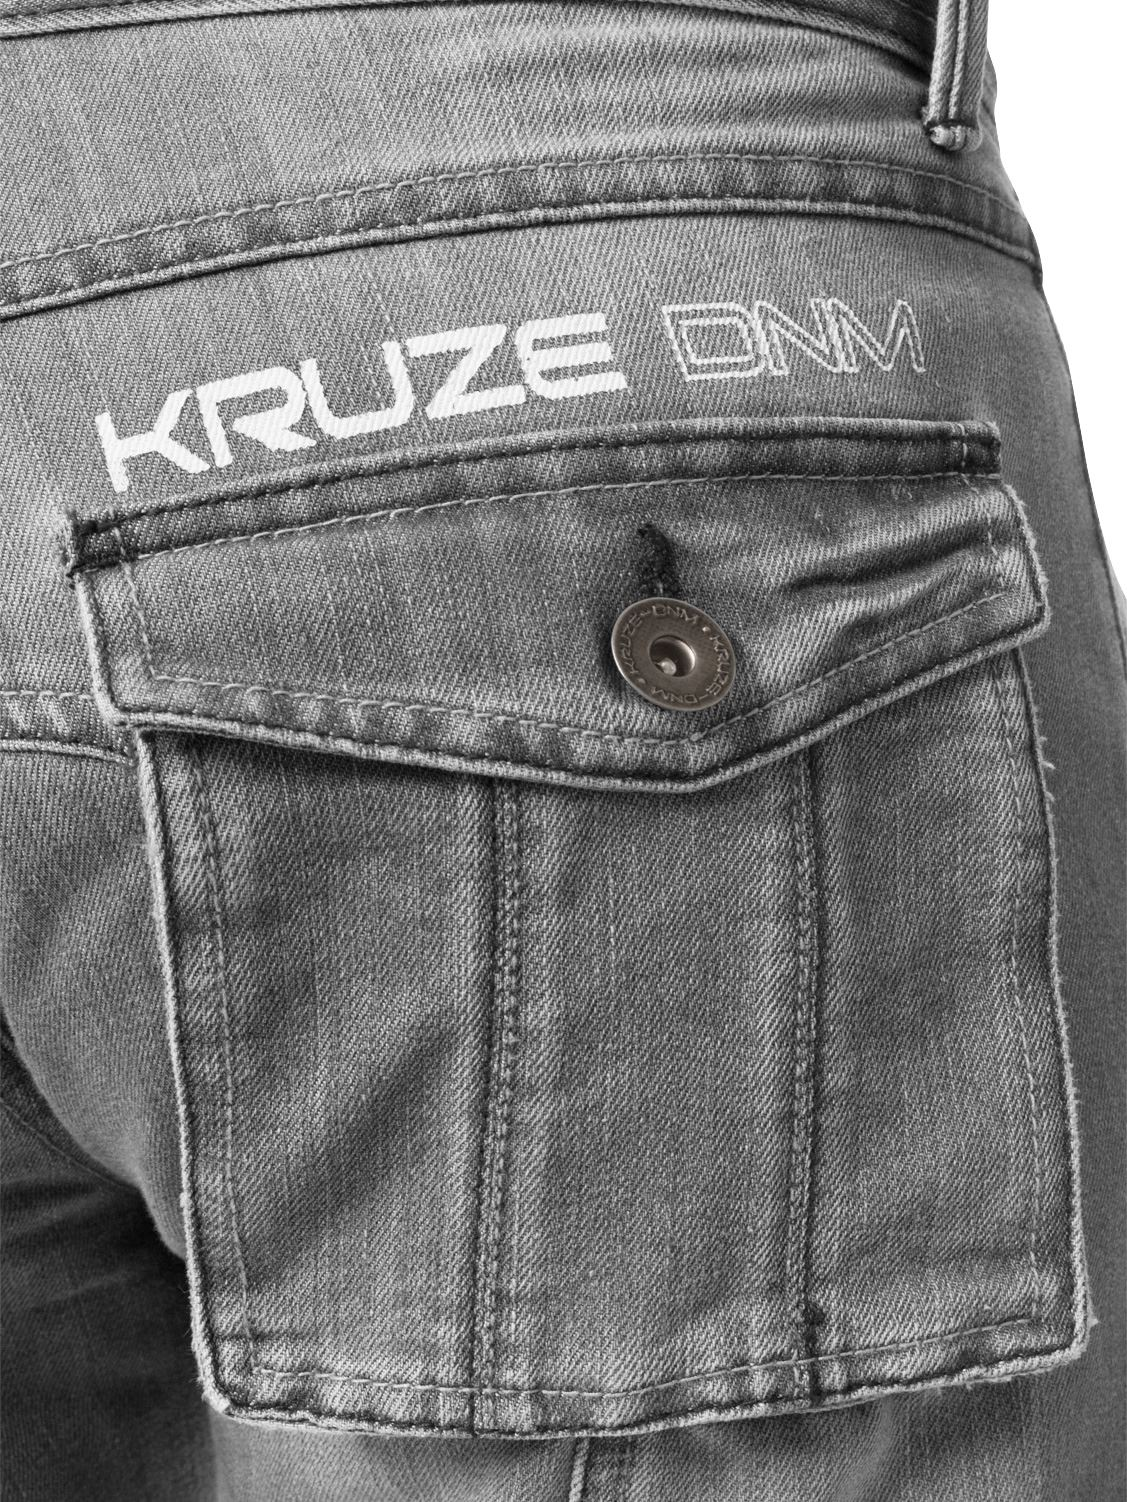 KRUZE-Mens-Combat-Jeans-Casual-Cargo-Work-Pants-Denim-Trousers-All-Waist-Sizes thumbnail 33